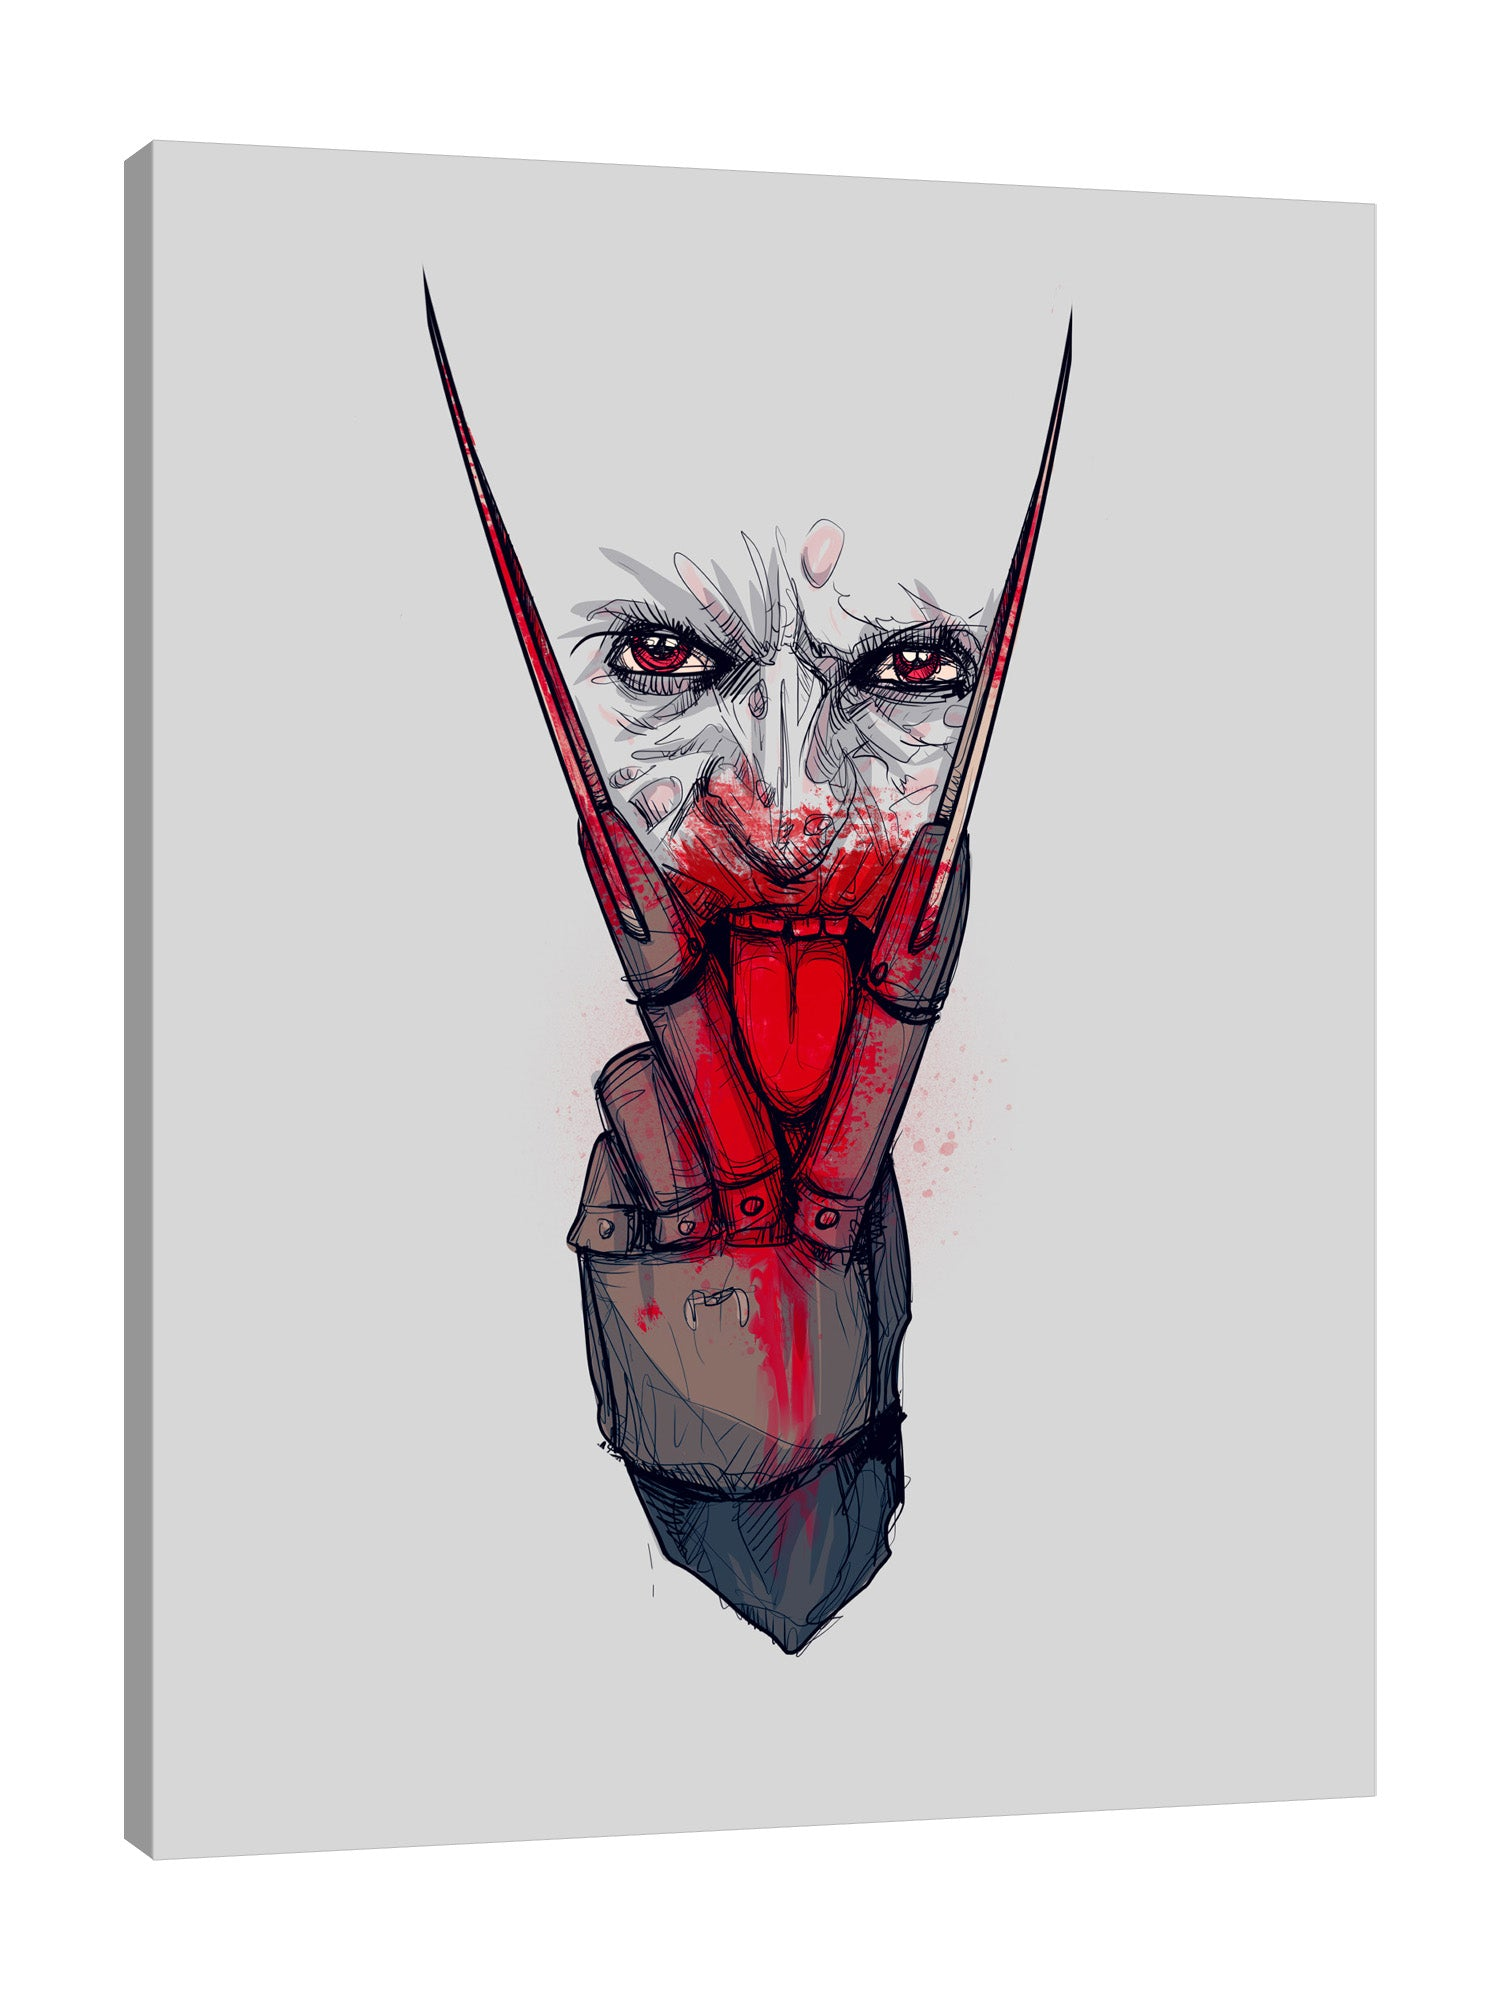 Ludwig-Van-Bacon,Vertical,3X4,Modern & Contemporary,Entertainment,kreuger,kreugerlingus,freddy,freddy kreuger,knife,knives,halloween,gloves,glove,blood,bloody,Blue,Rose Red,Gray